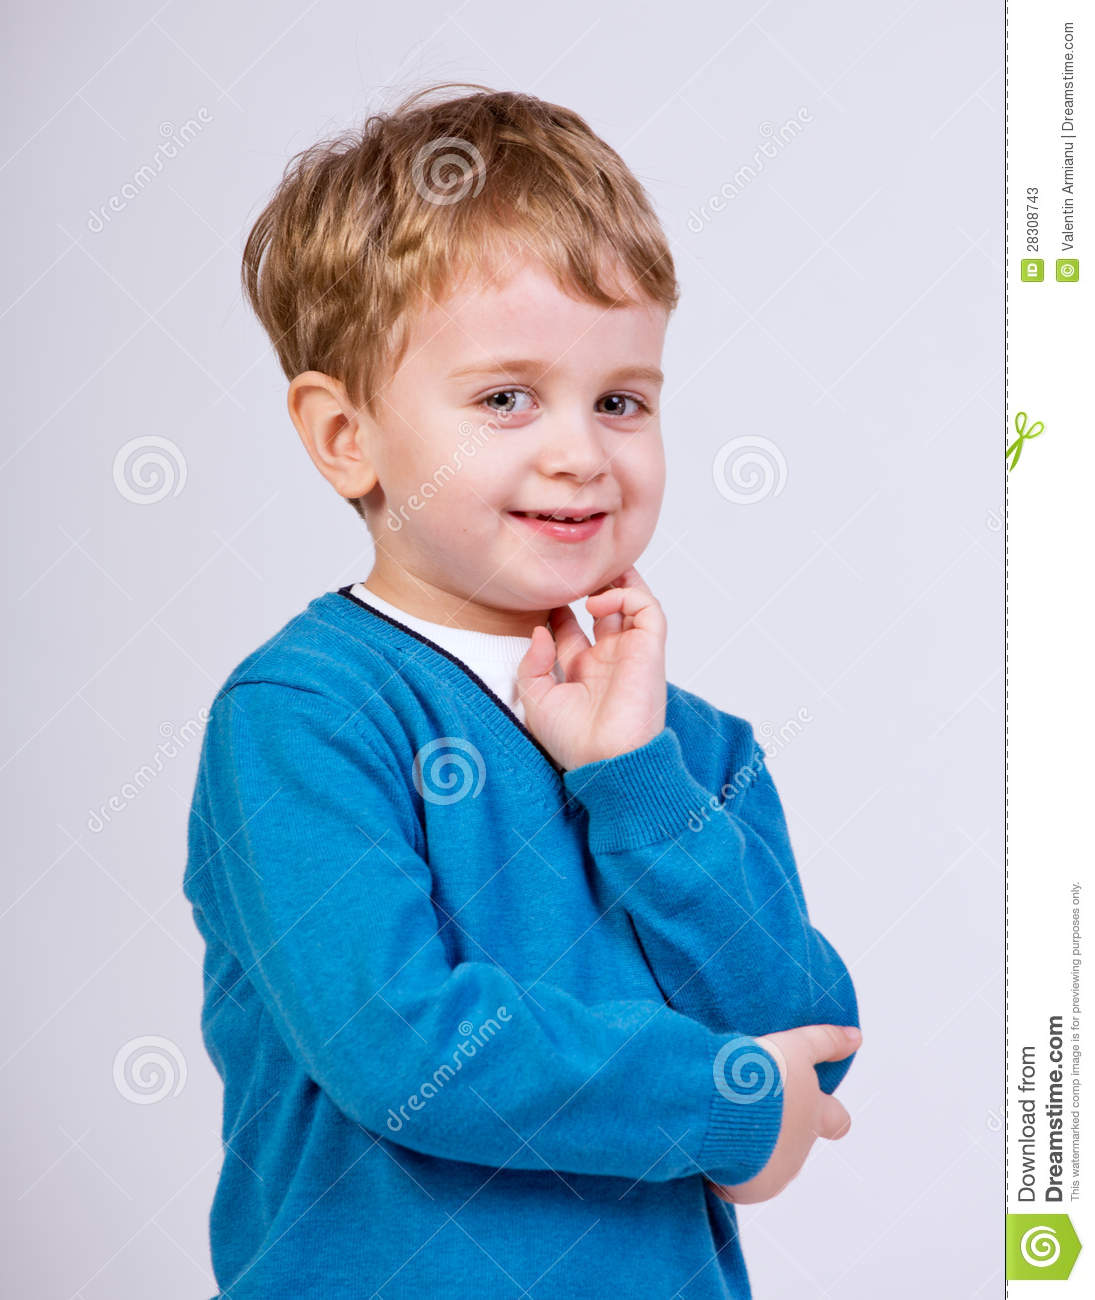 Thinking Young Kid Stock Photos - Image: 28308743